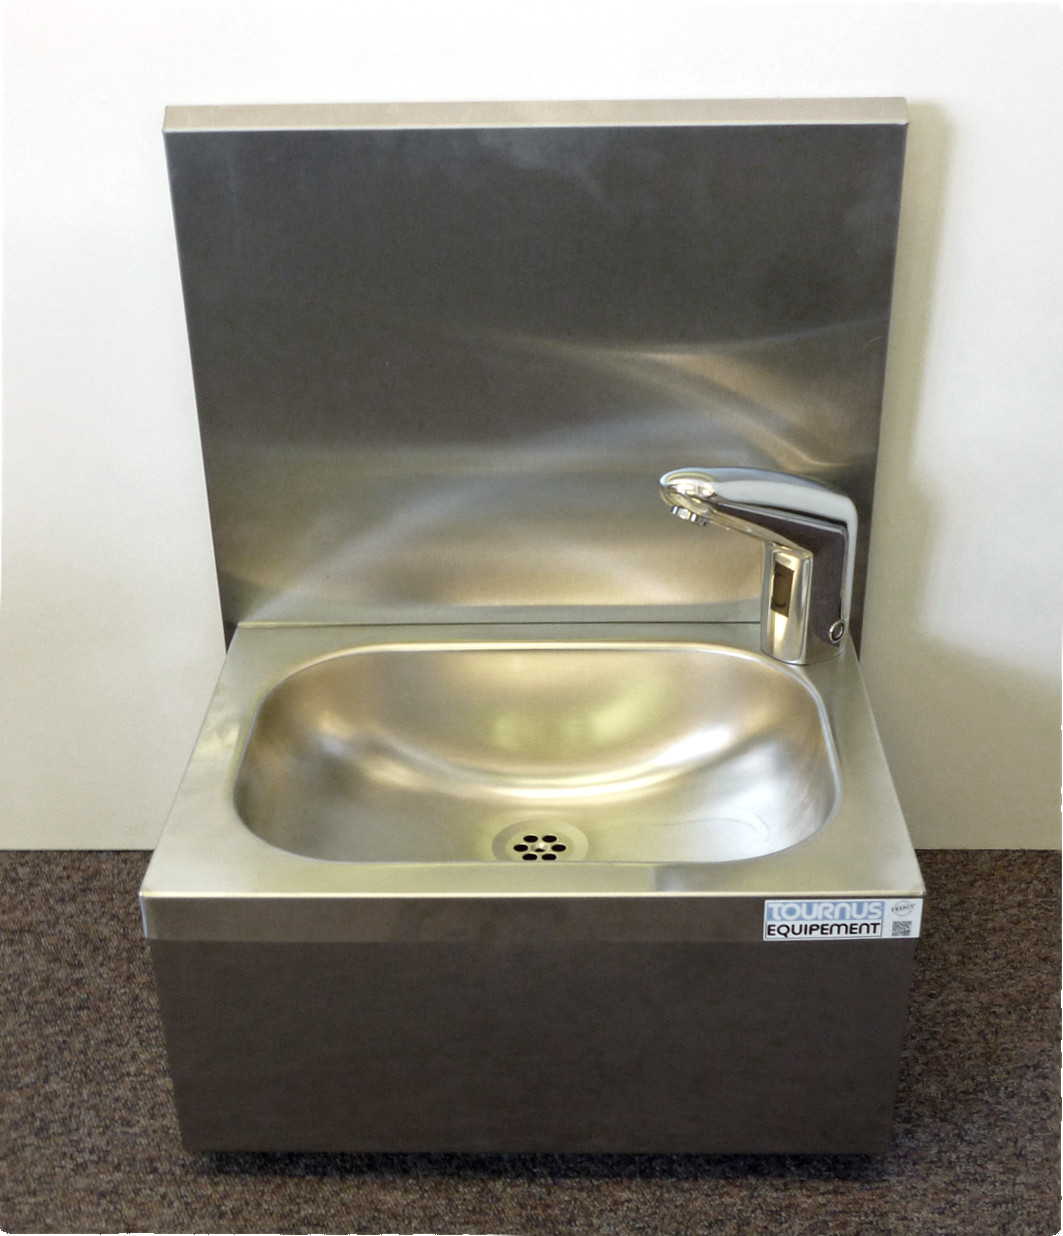 Electronic Sensor Tap Hand Sink - Complete Kit